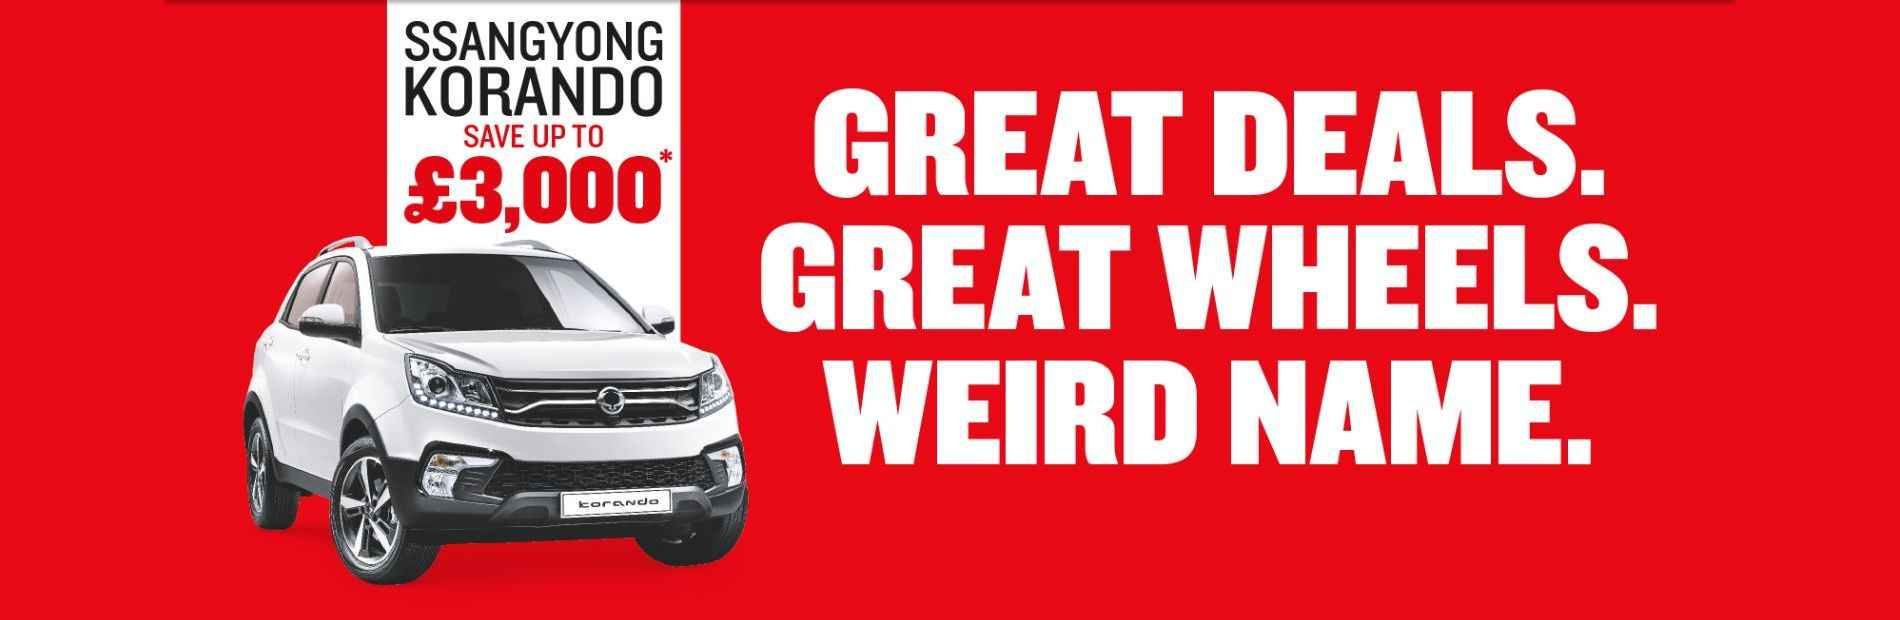 Korando Offer Banner